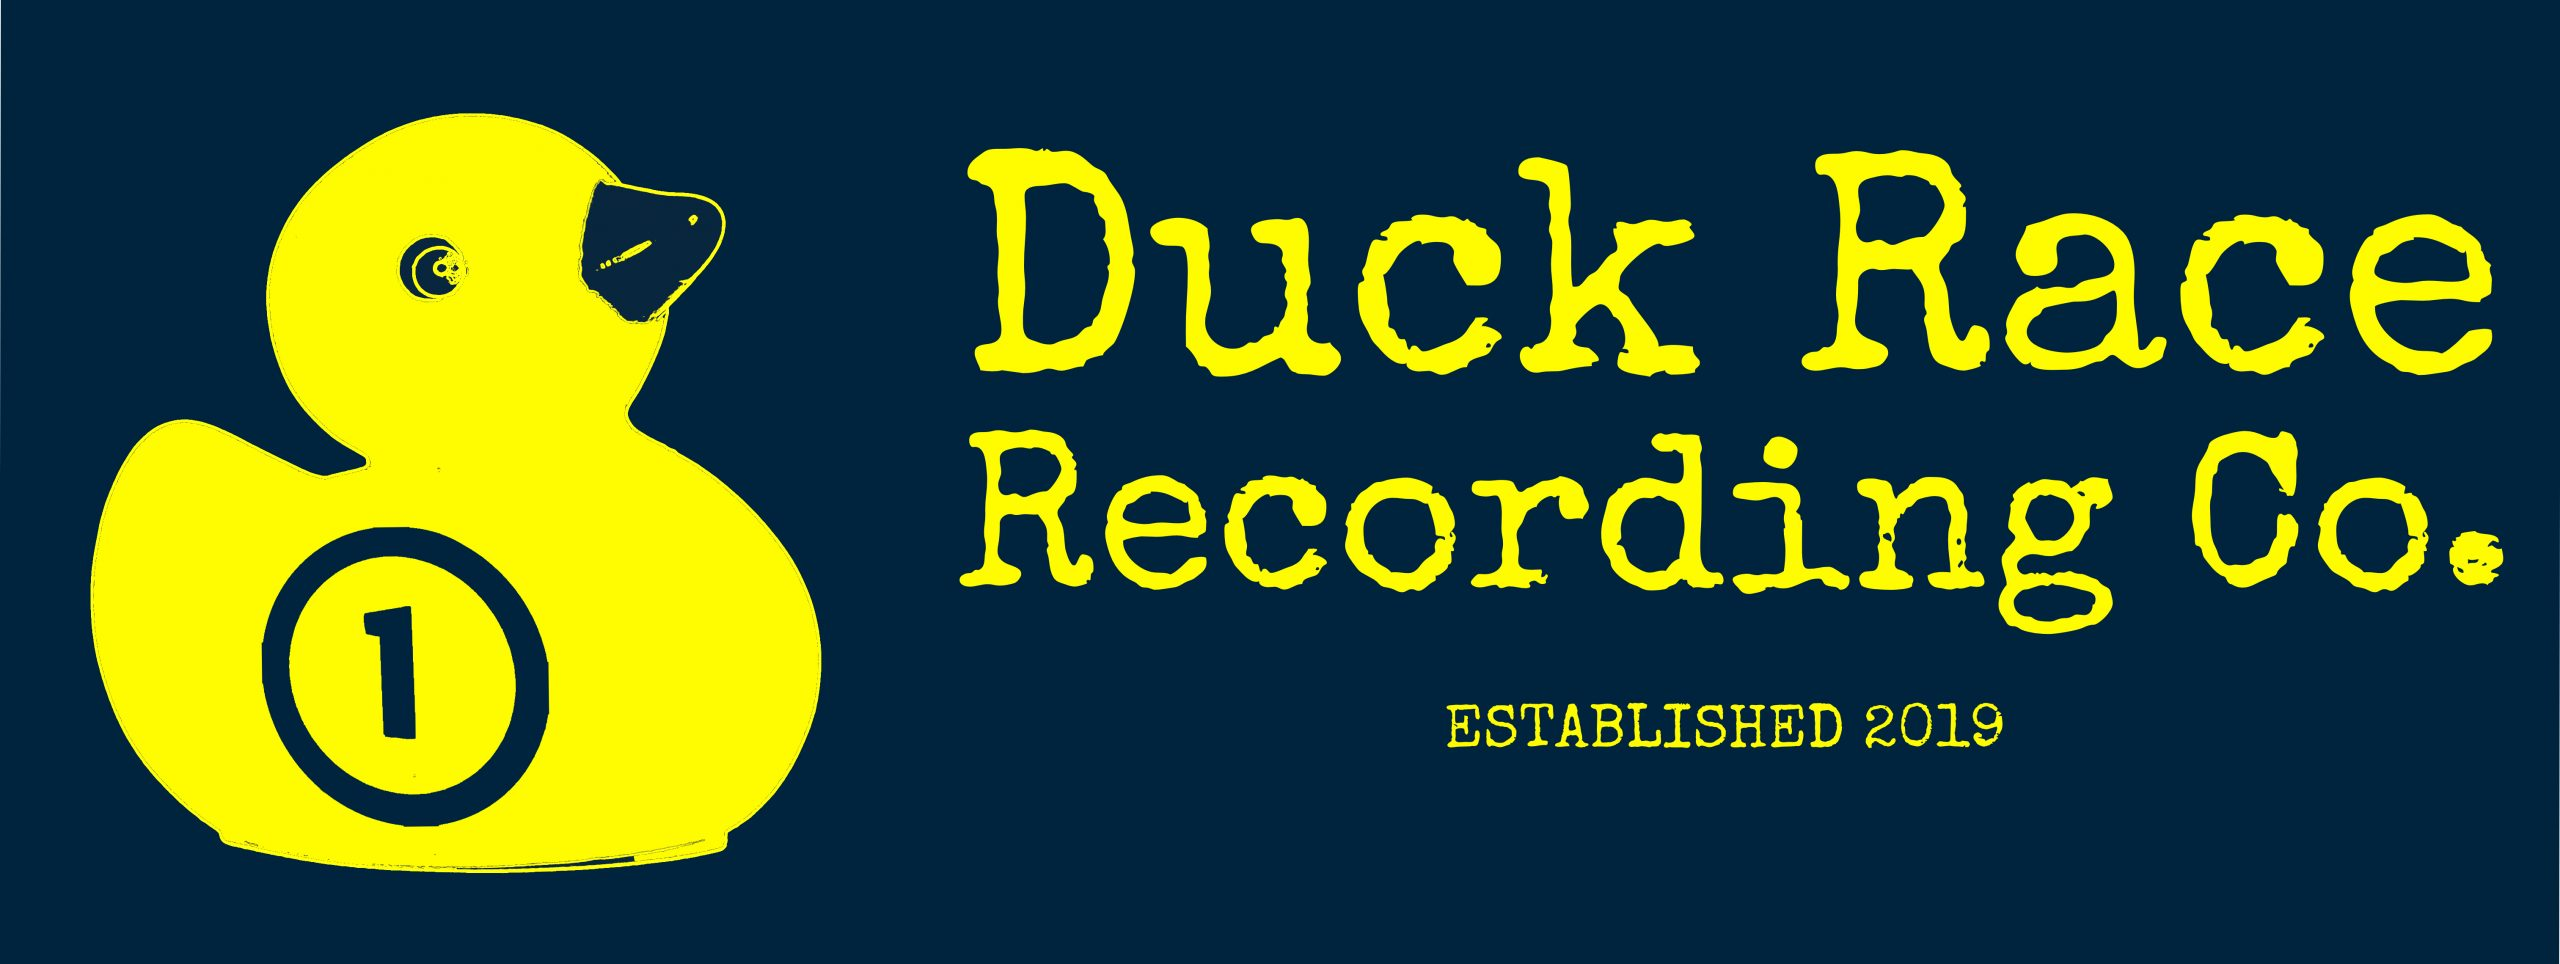 Duck Race Recording Co.